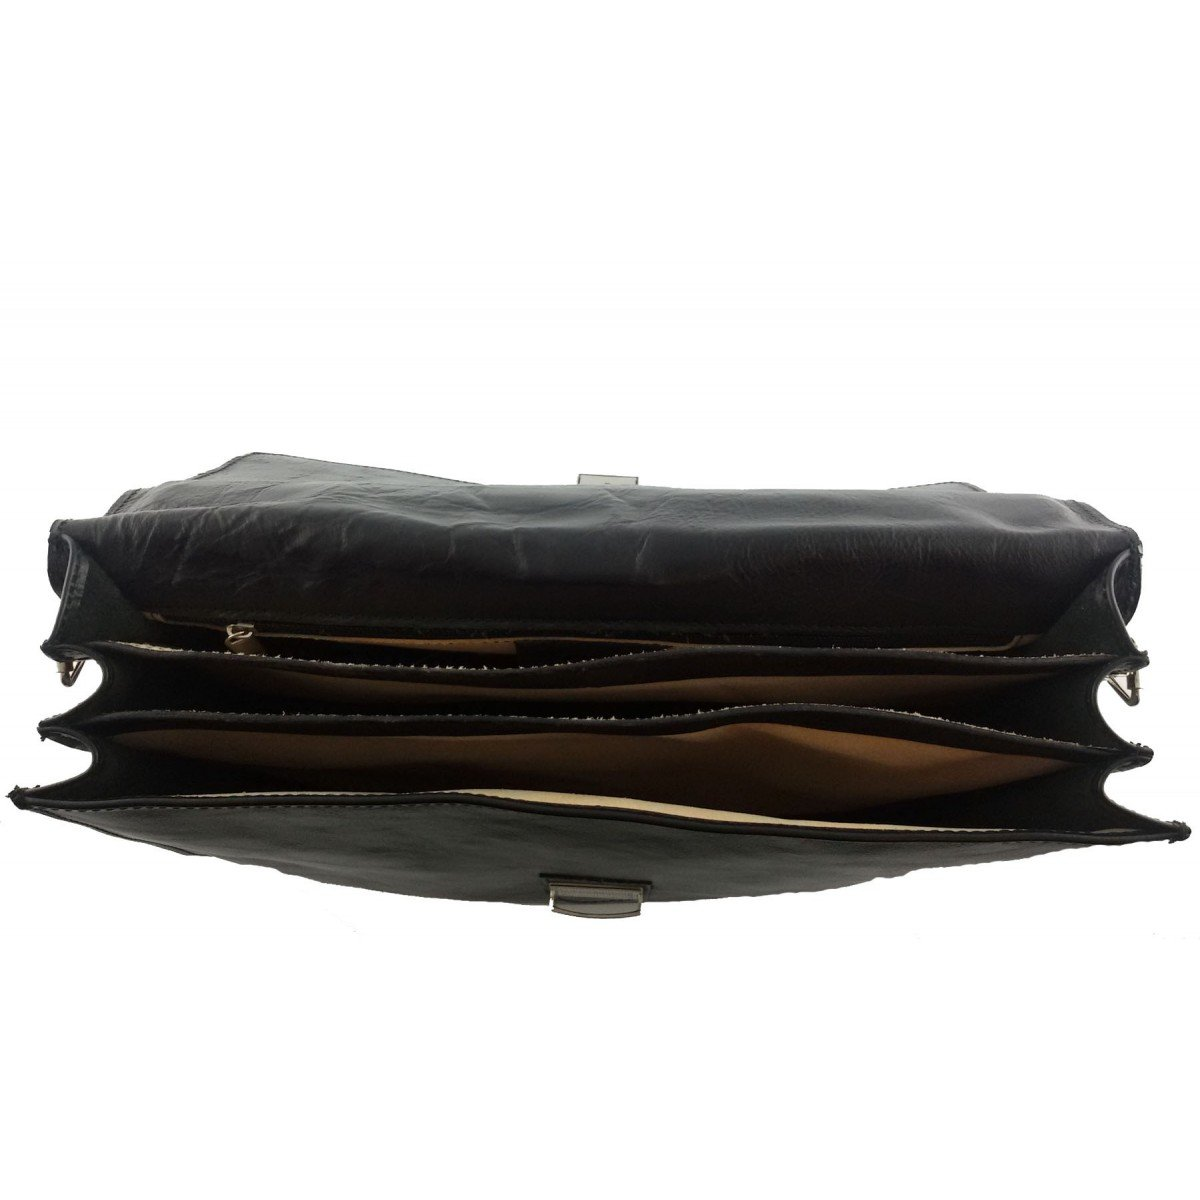 Dream Leather Bags Made in Italy Genuine Leather Leather Business Bag Color Black